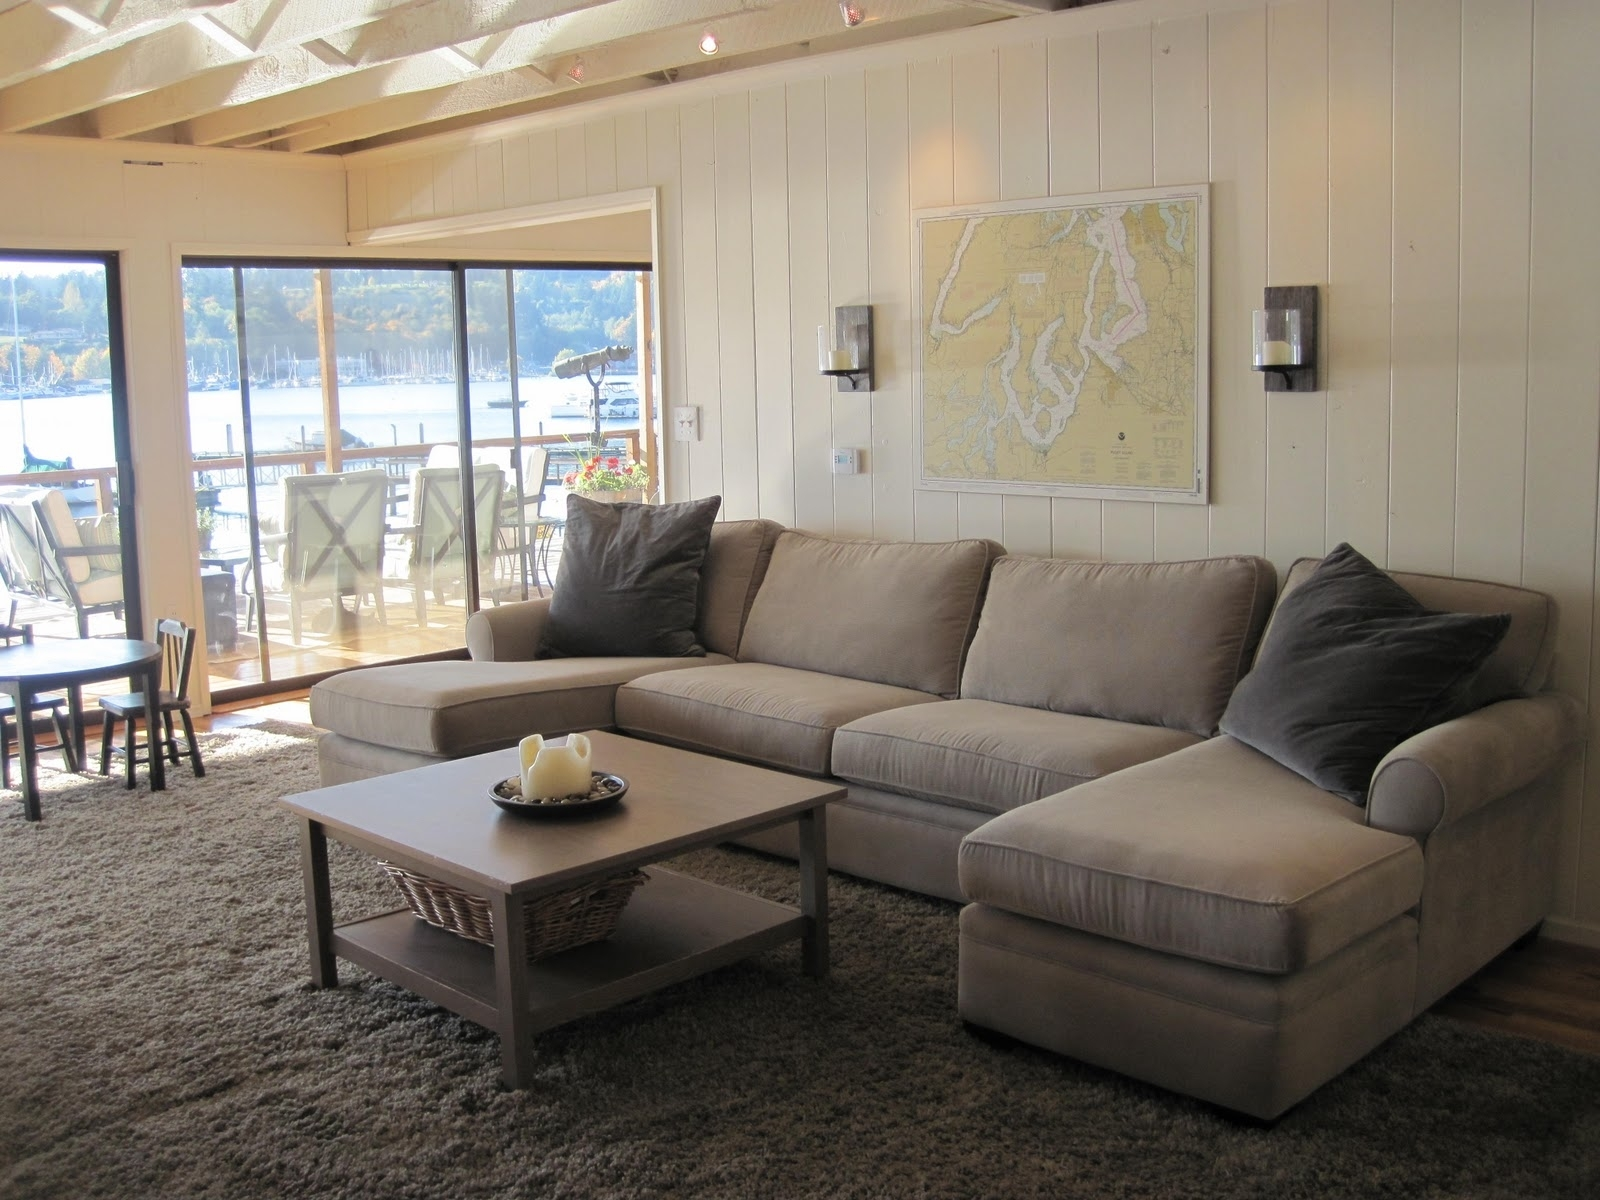 U Shaped Sectional With Chaise Design | Homesfeed Regarding Big U Shaped Sectionals (View 8 of 10)